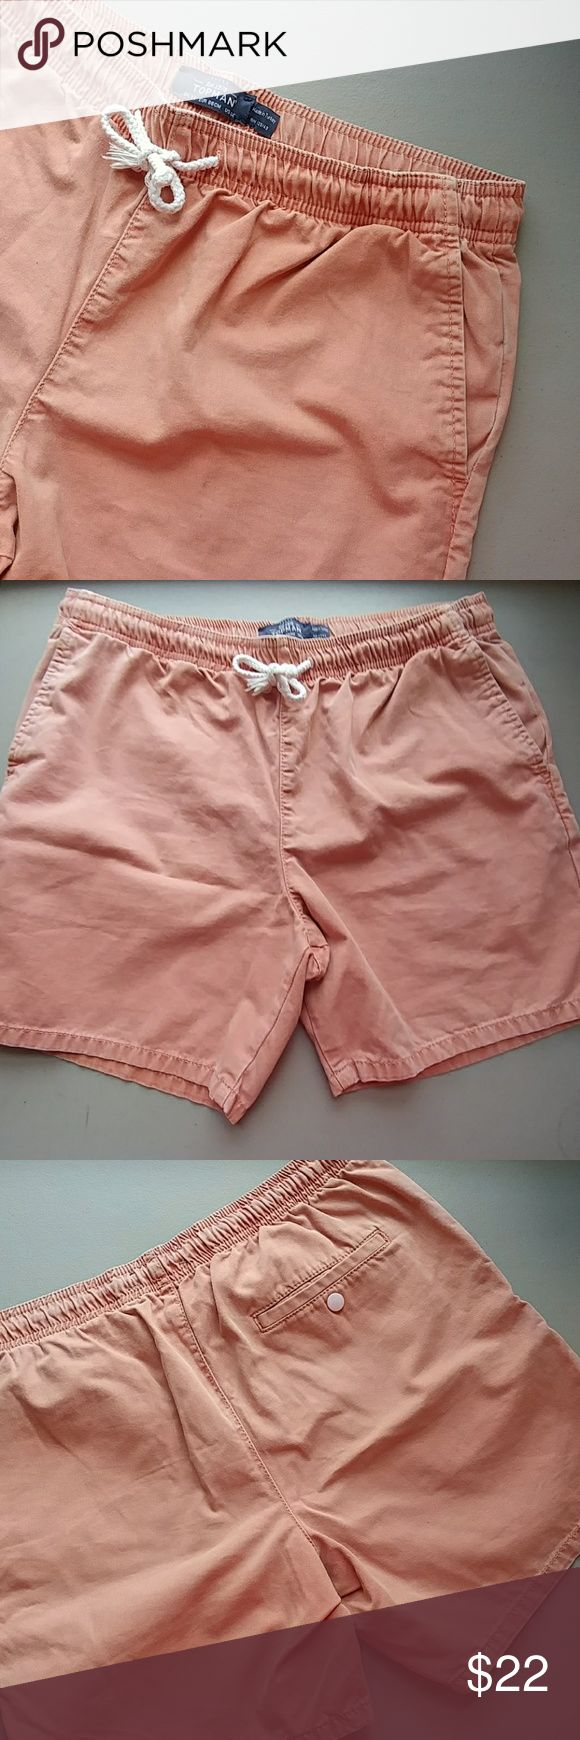 Men's TOPMAN SHORTS Elastic Waist size 34bwith drawstring tie Made to have a faded/worn look Topman Shorts